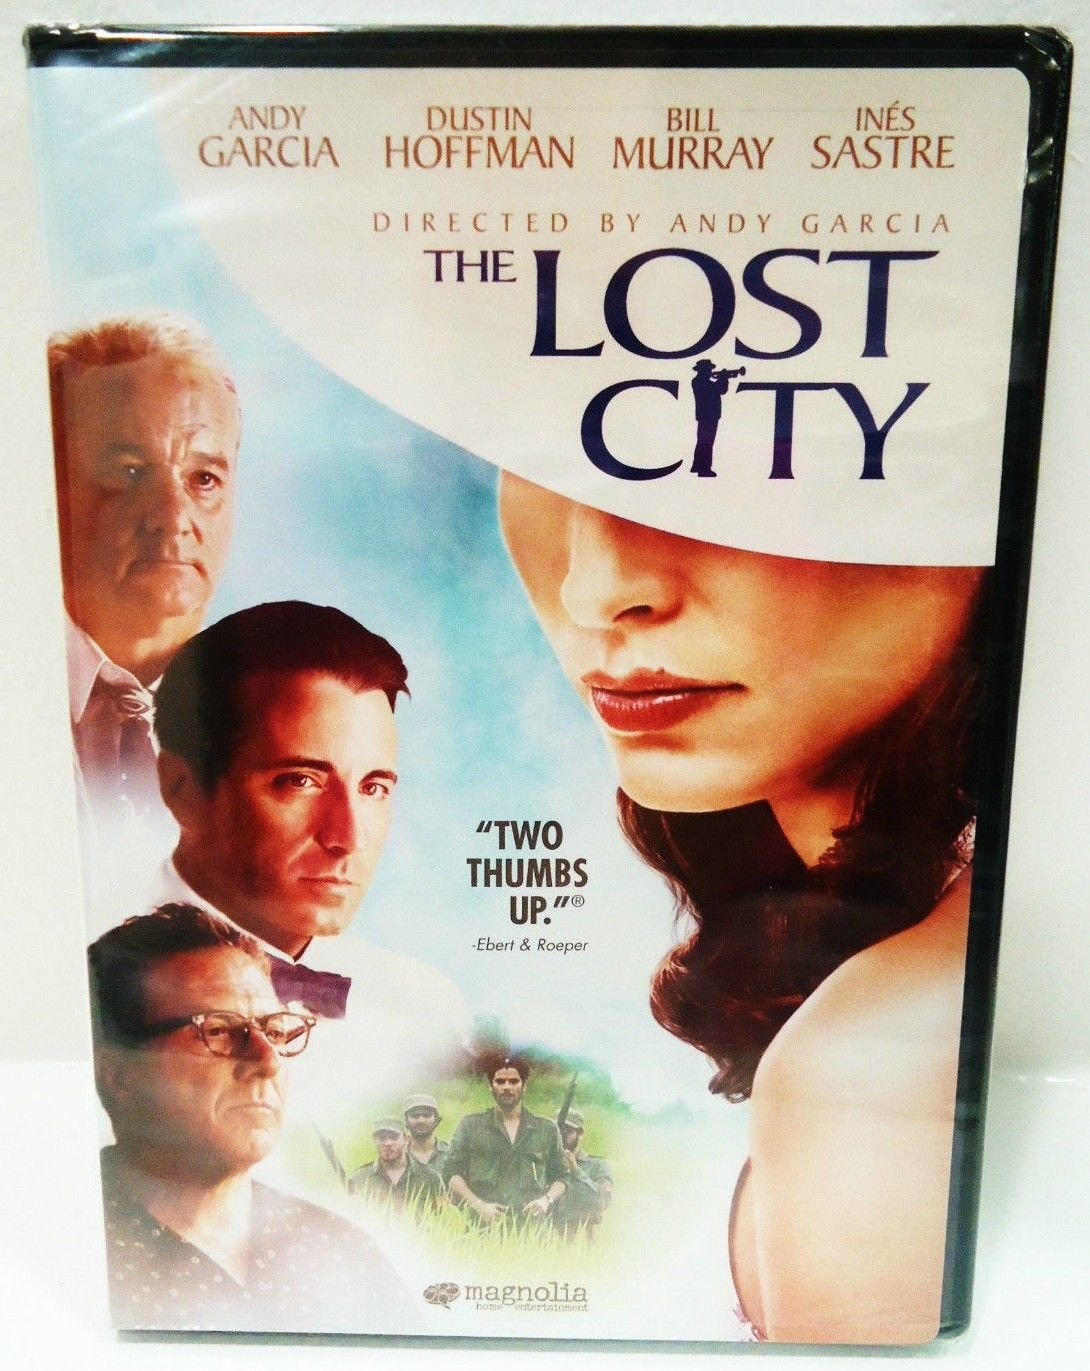 THE LOST CITY - DVD - BILL MURRAY - ANDY GARCIA - NEW - SEALED - ACTION - MOVIE